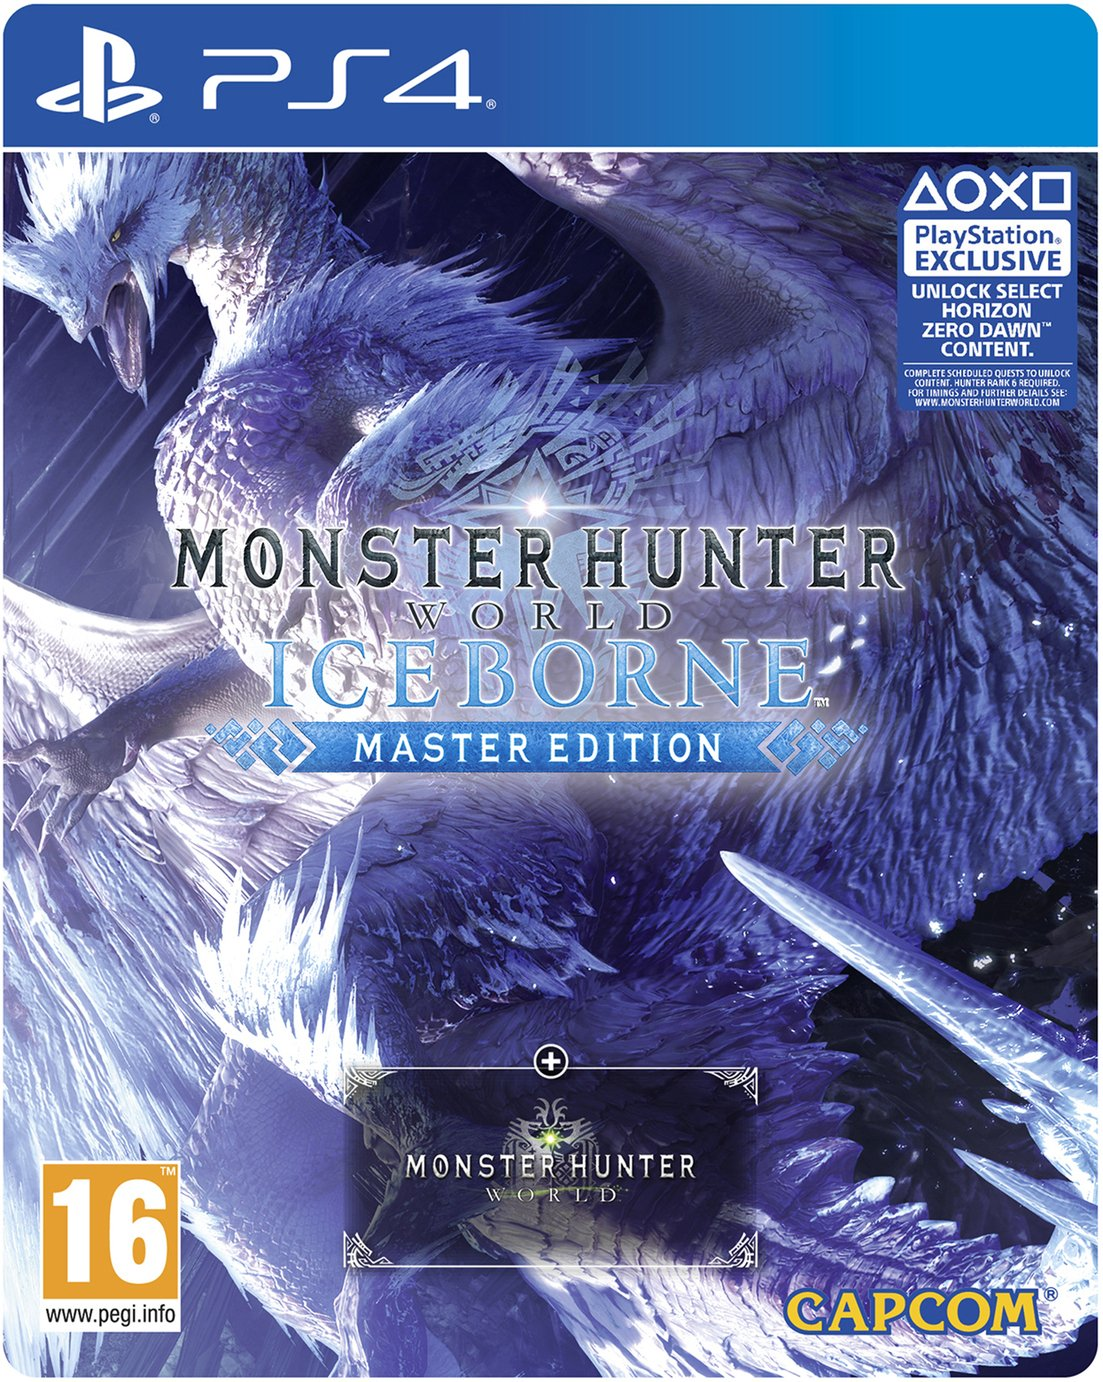 Monster Hunter World: Iceborne Master Edn PS4 Pre-Order Game